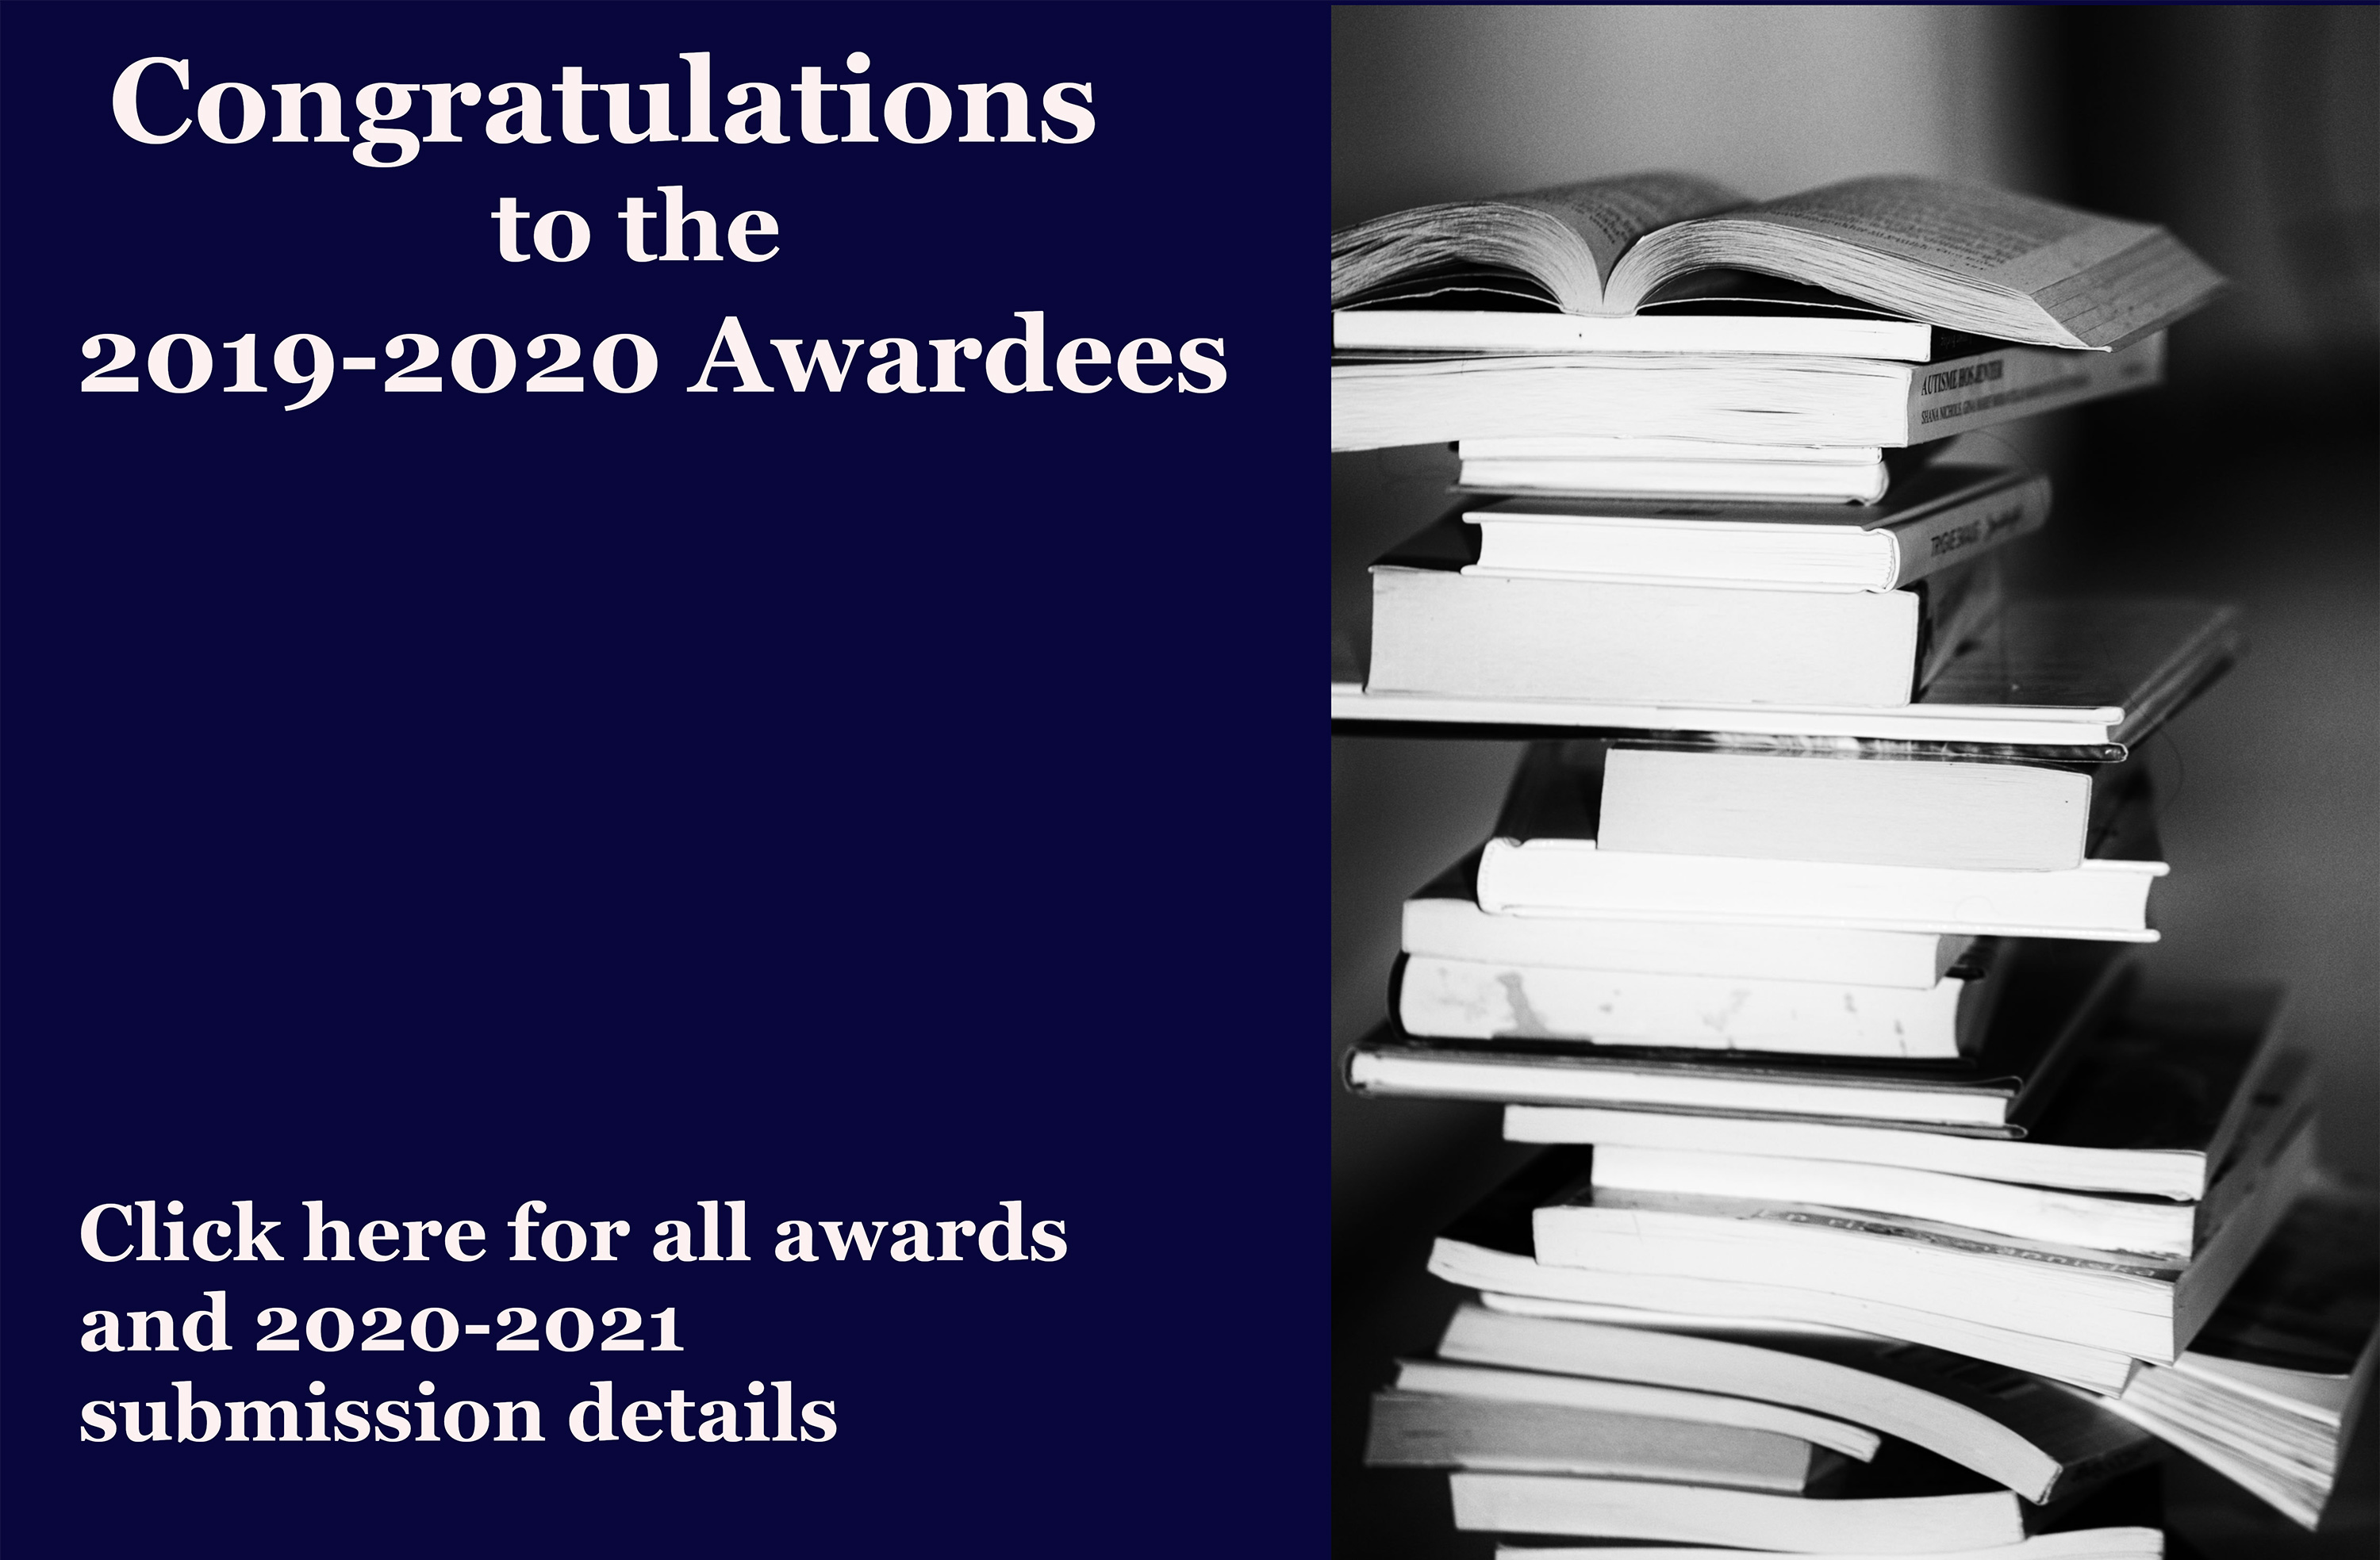 Find awards and 2020-2021 submission details